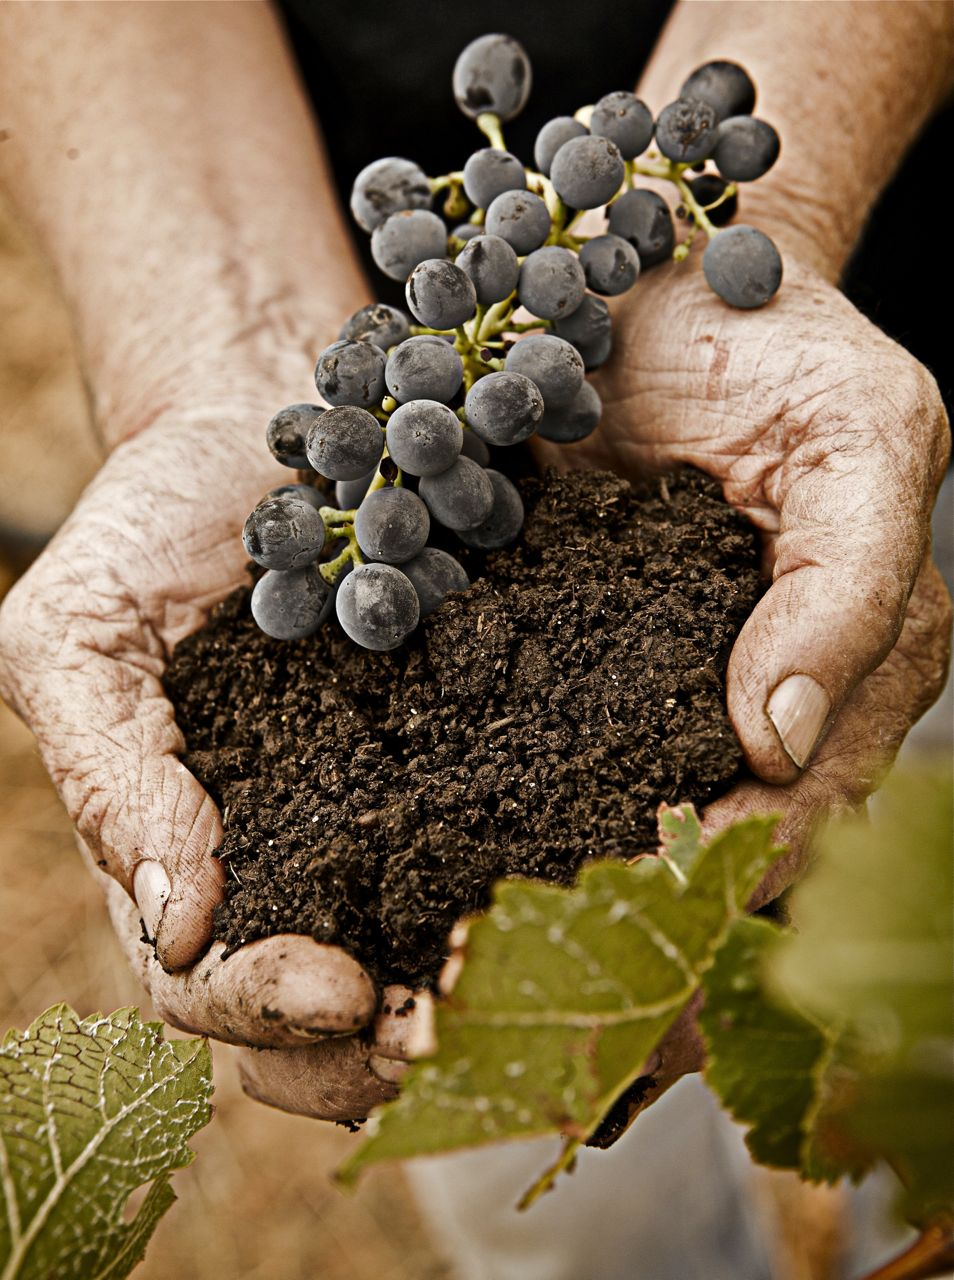 soil in grapes.jpg